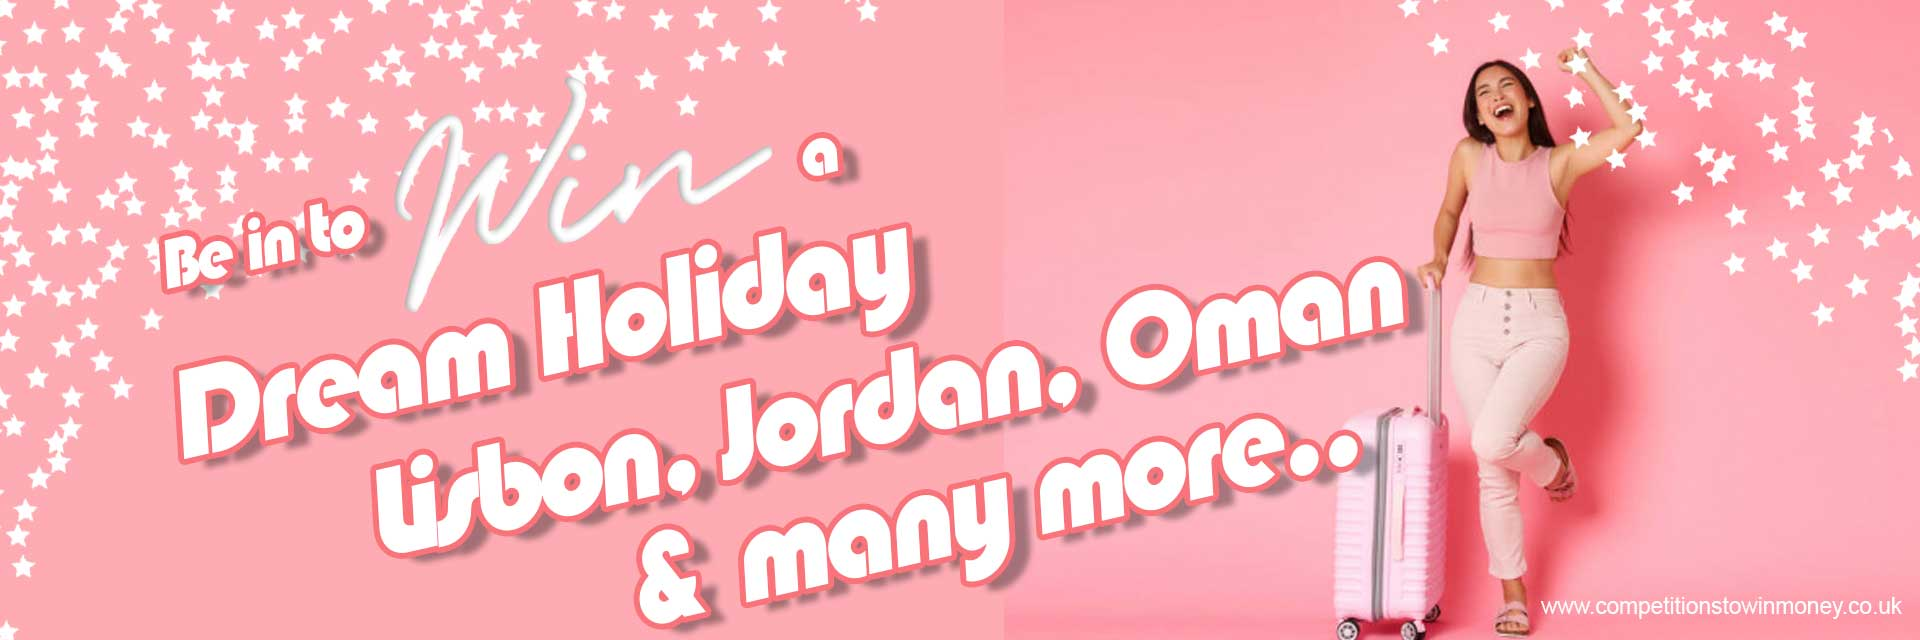 Competitions to Win a Holiday